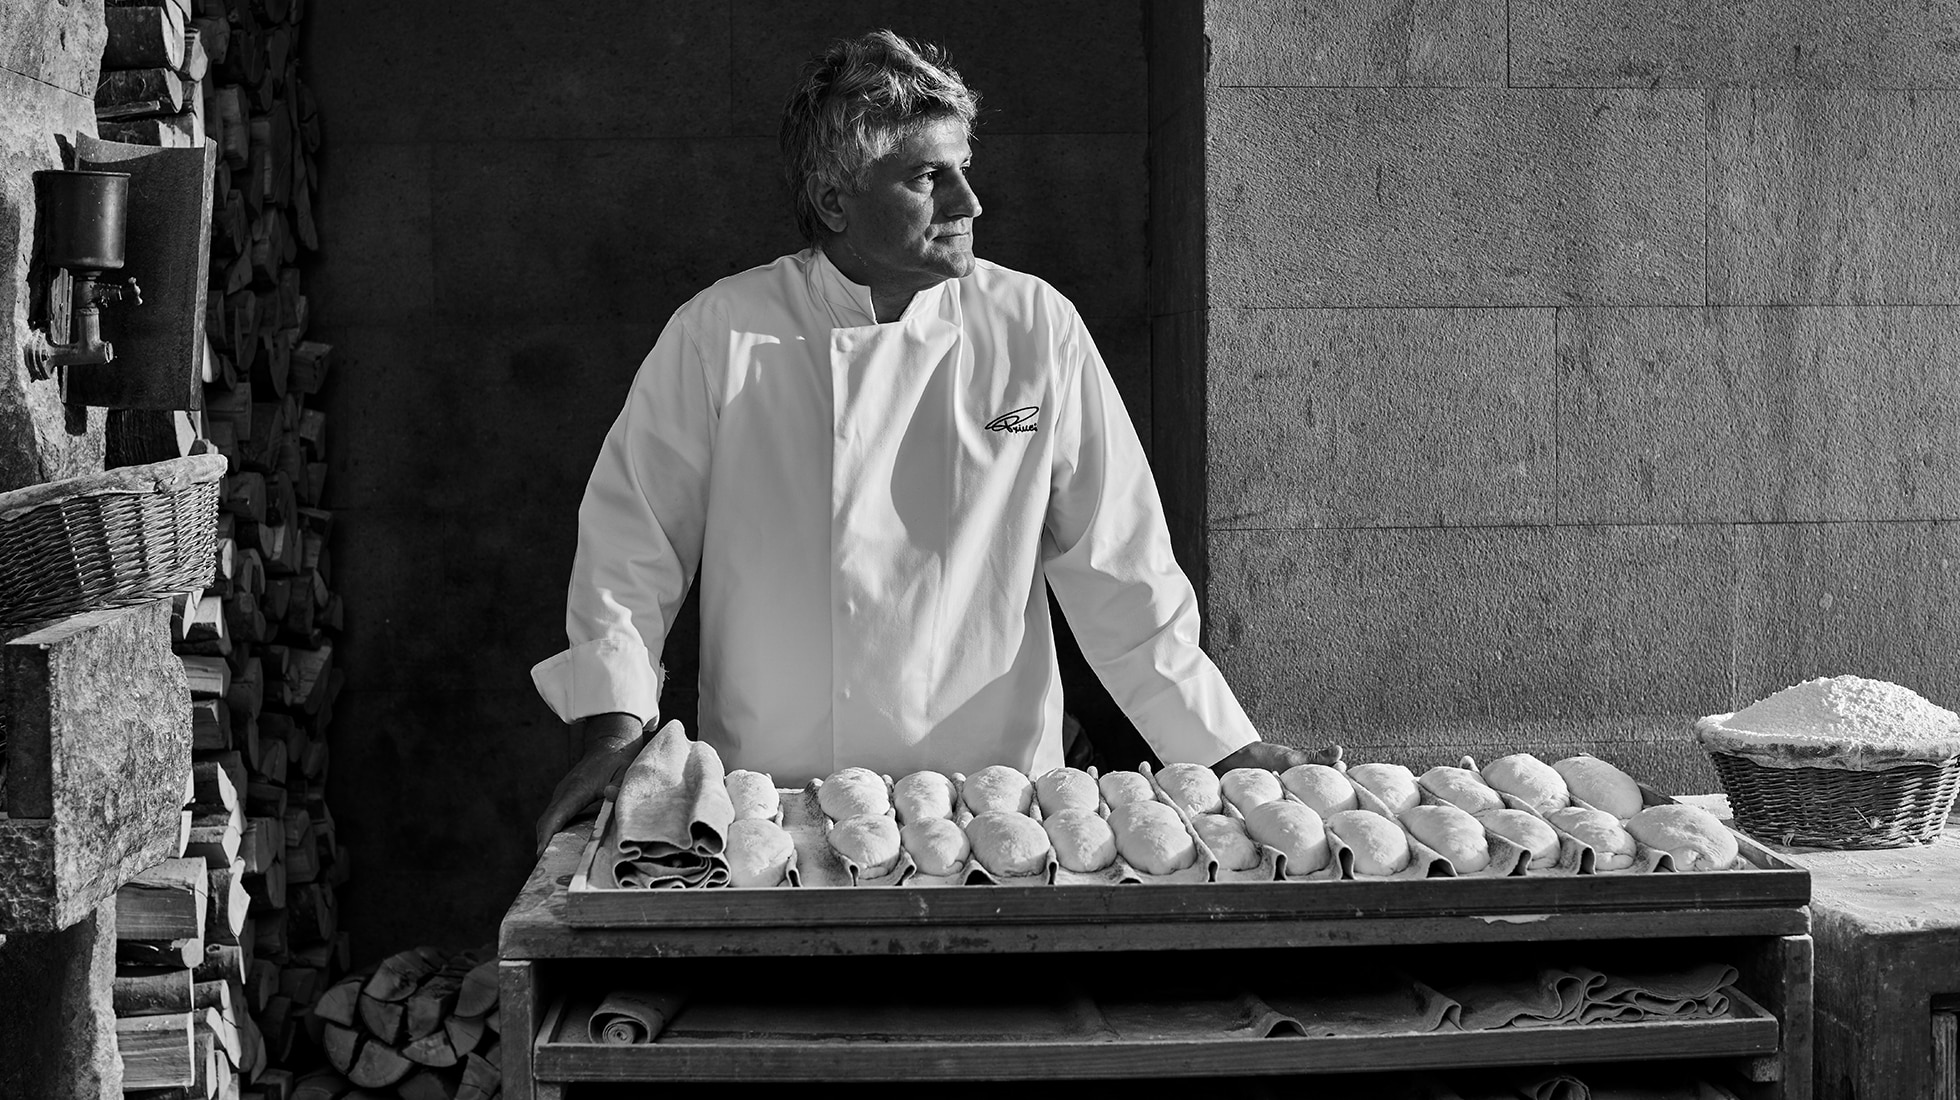 Black and white image of man looking into the distance to the right, near a tray of baked goods and a basket of flour